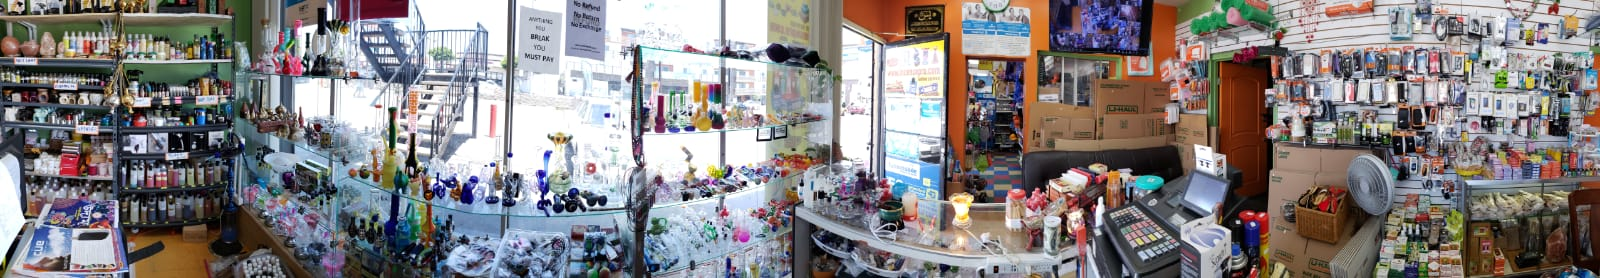 Incense store picture